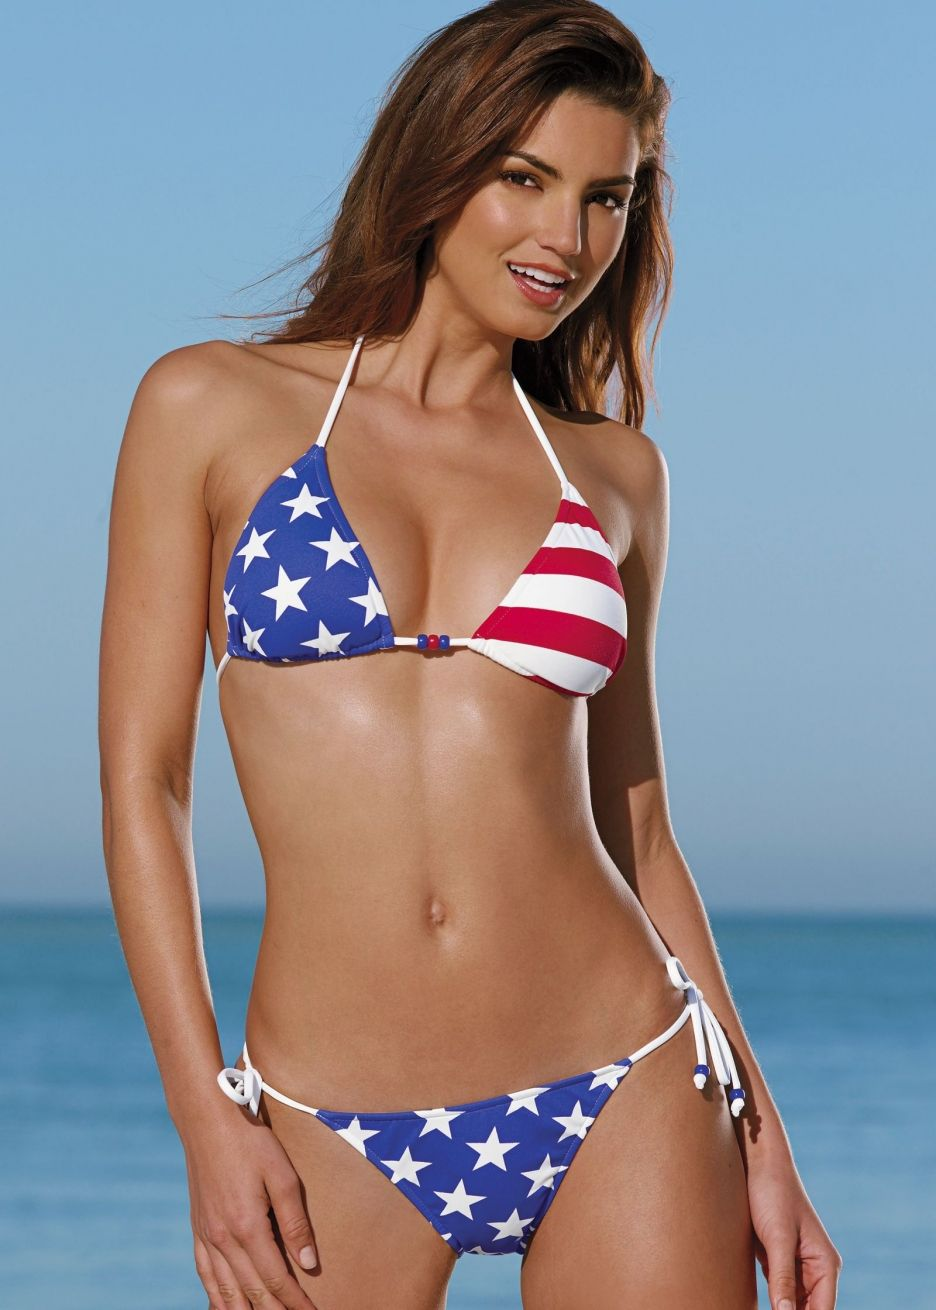 patriots cheerleaders bikini